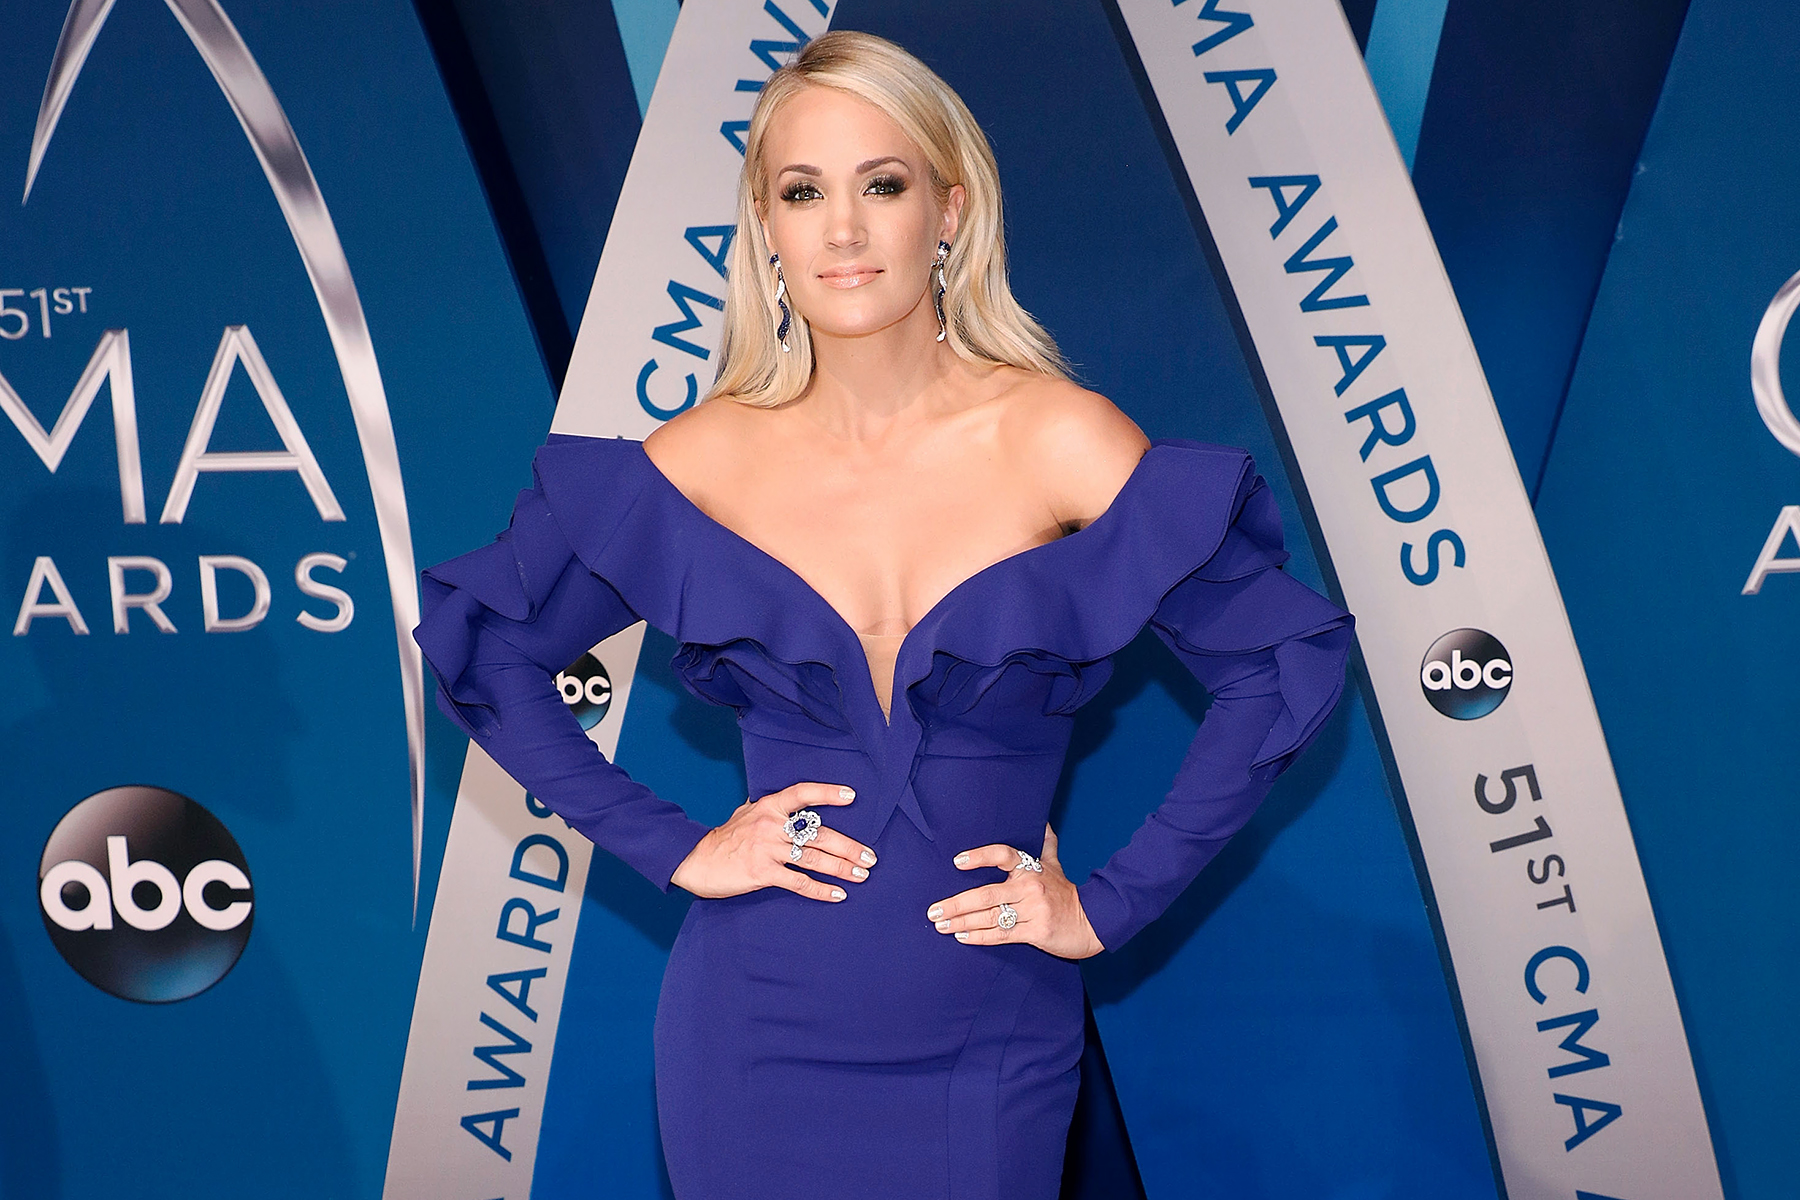 Carrie Underwood suffered severe facial injuries in riding accident